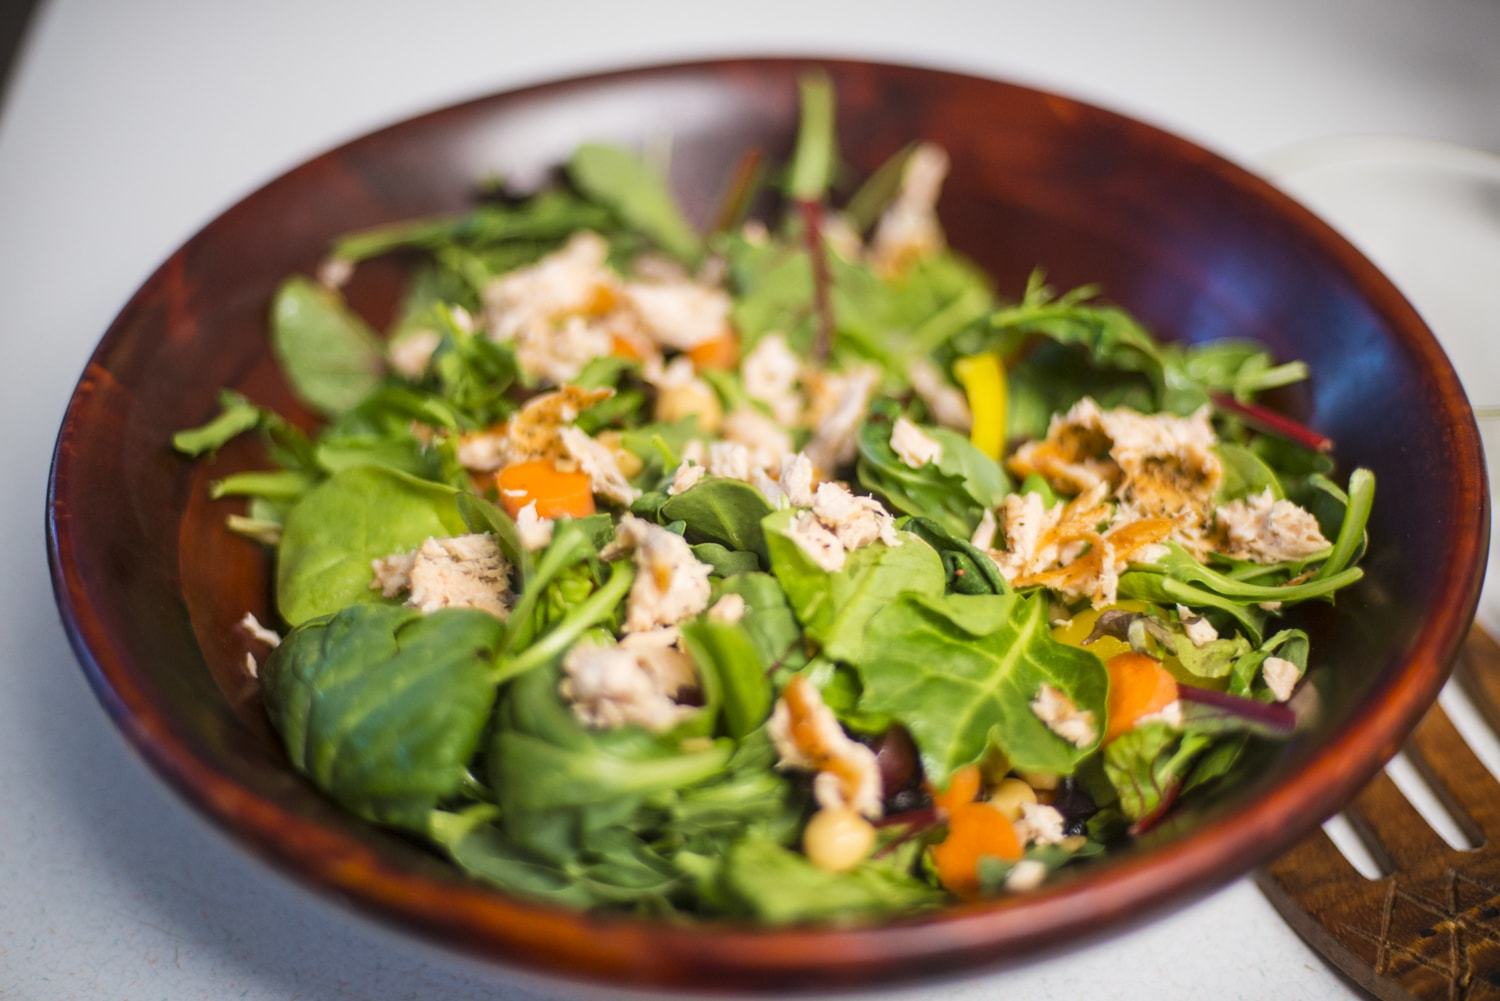 Throw those delicious bite sized salmon pieces into your salad, and add a couple tablespoons of your Agave Nectar salad dressing.